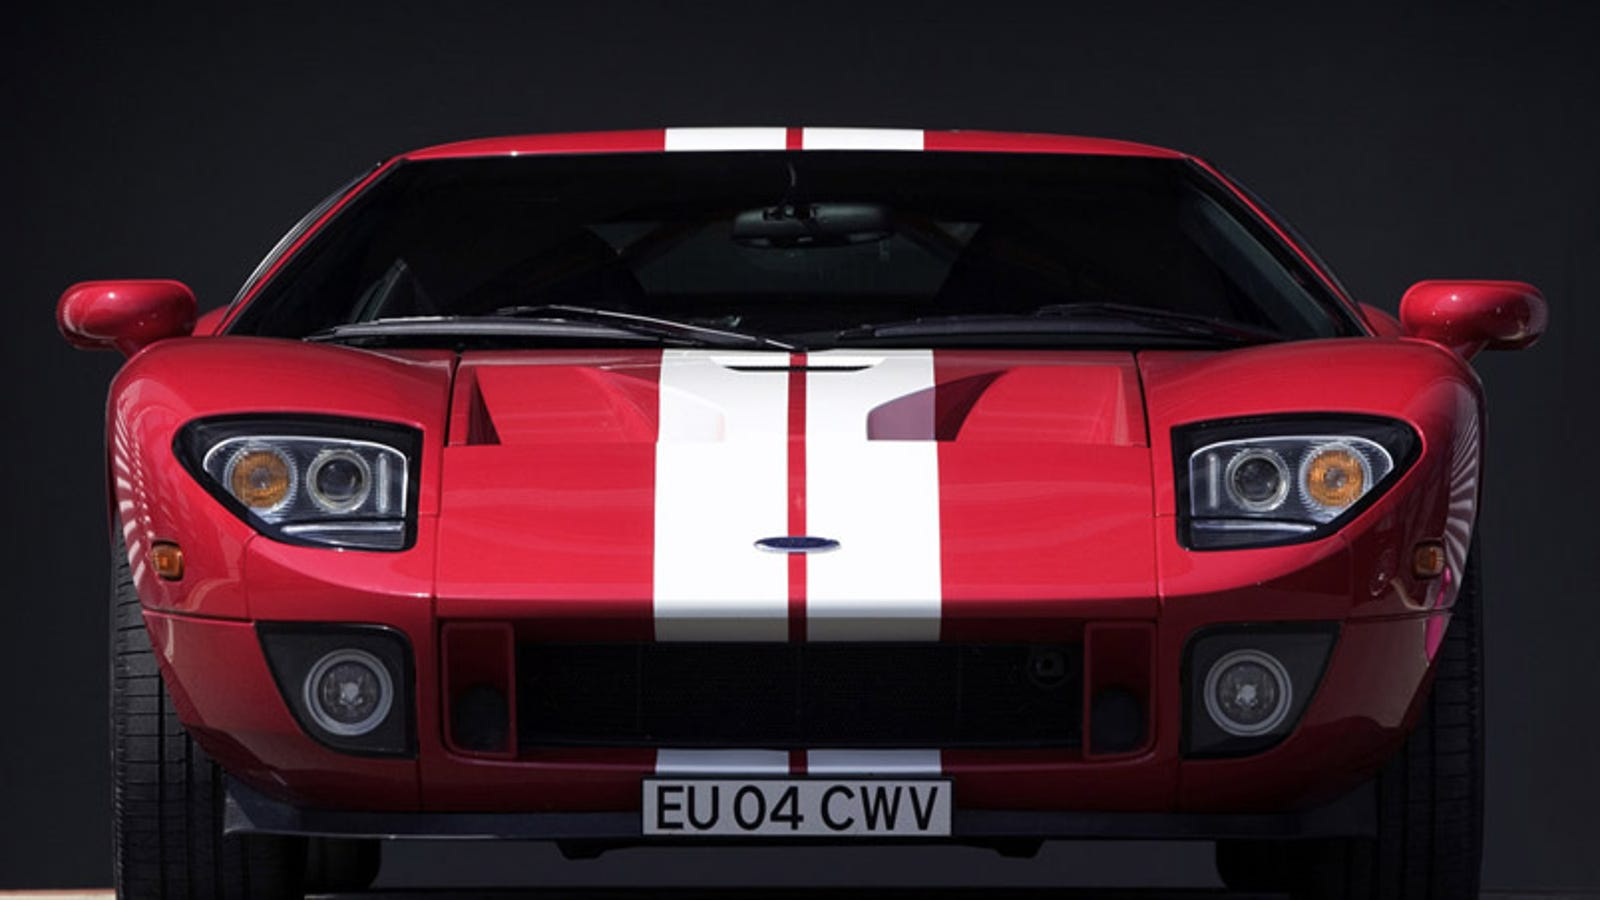 The Ford Gt Has A